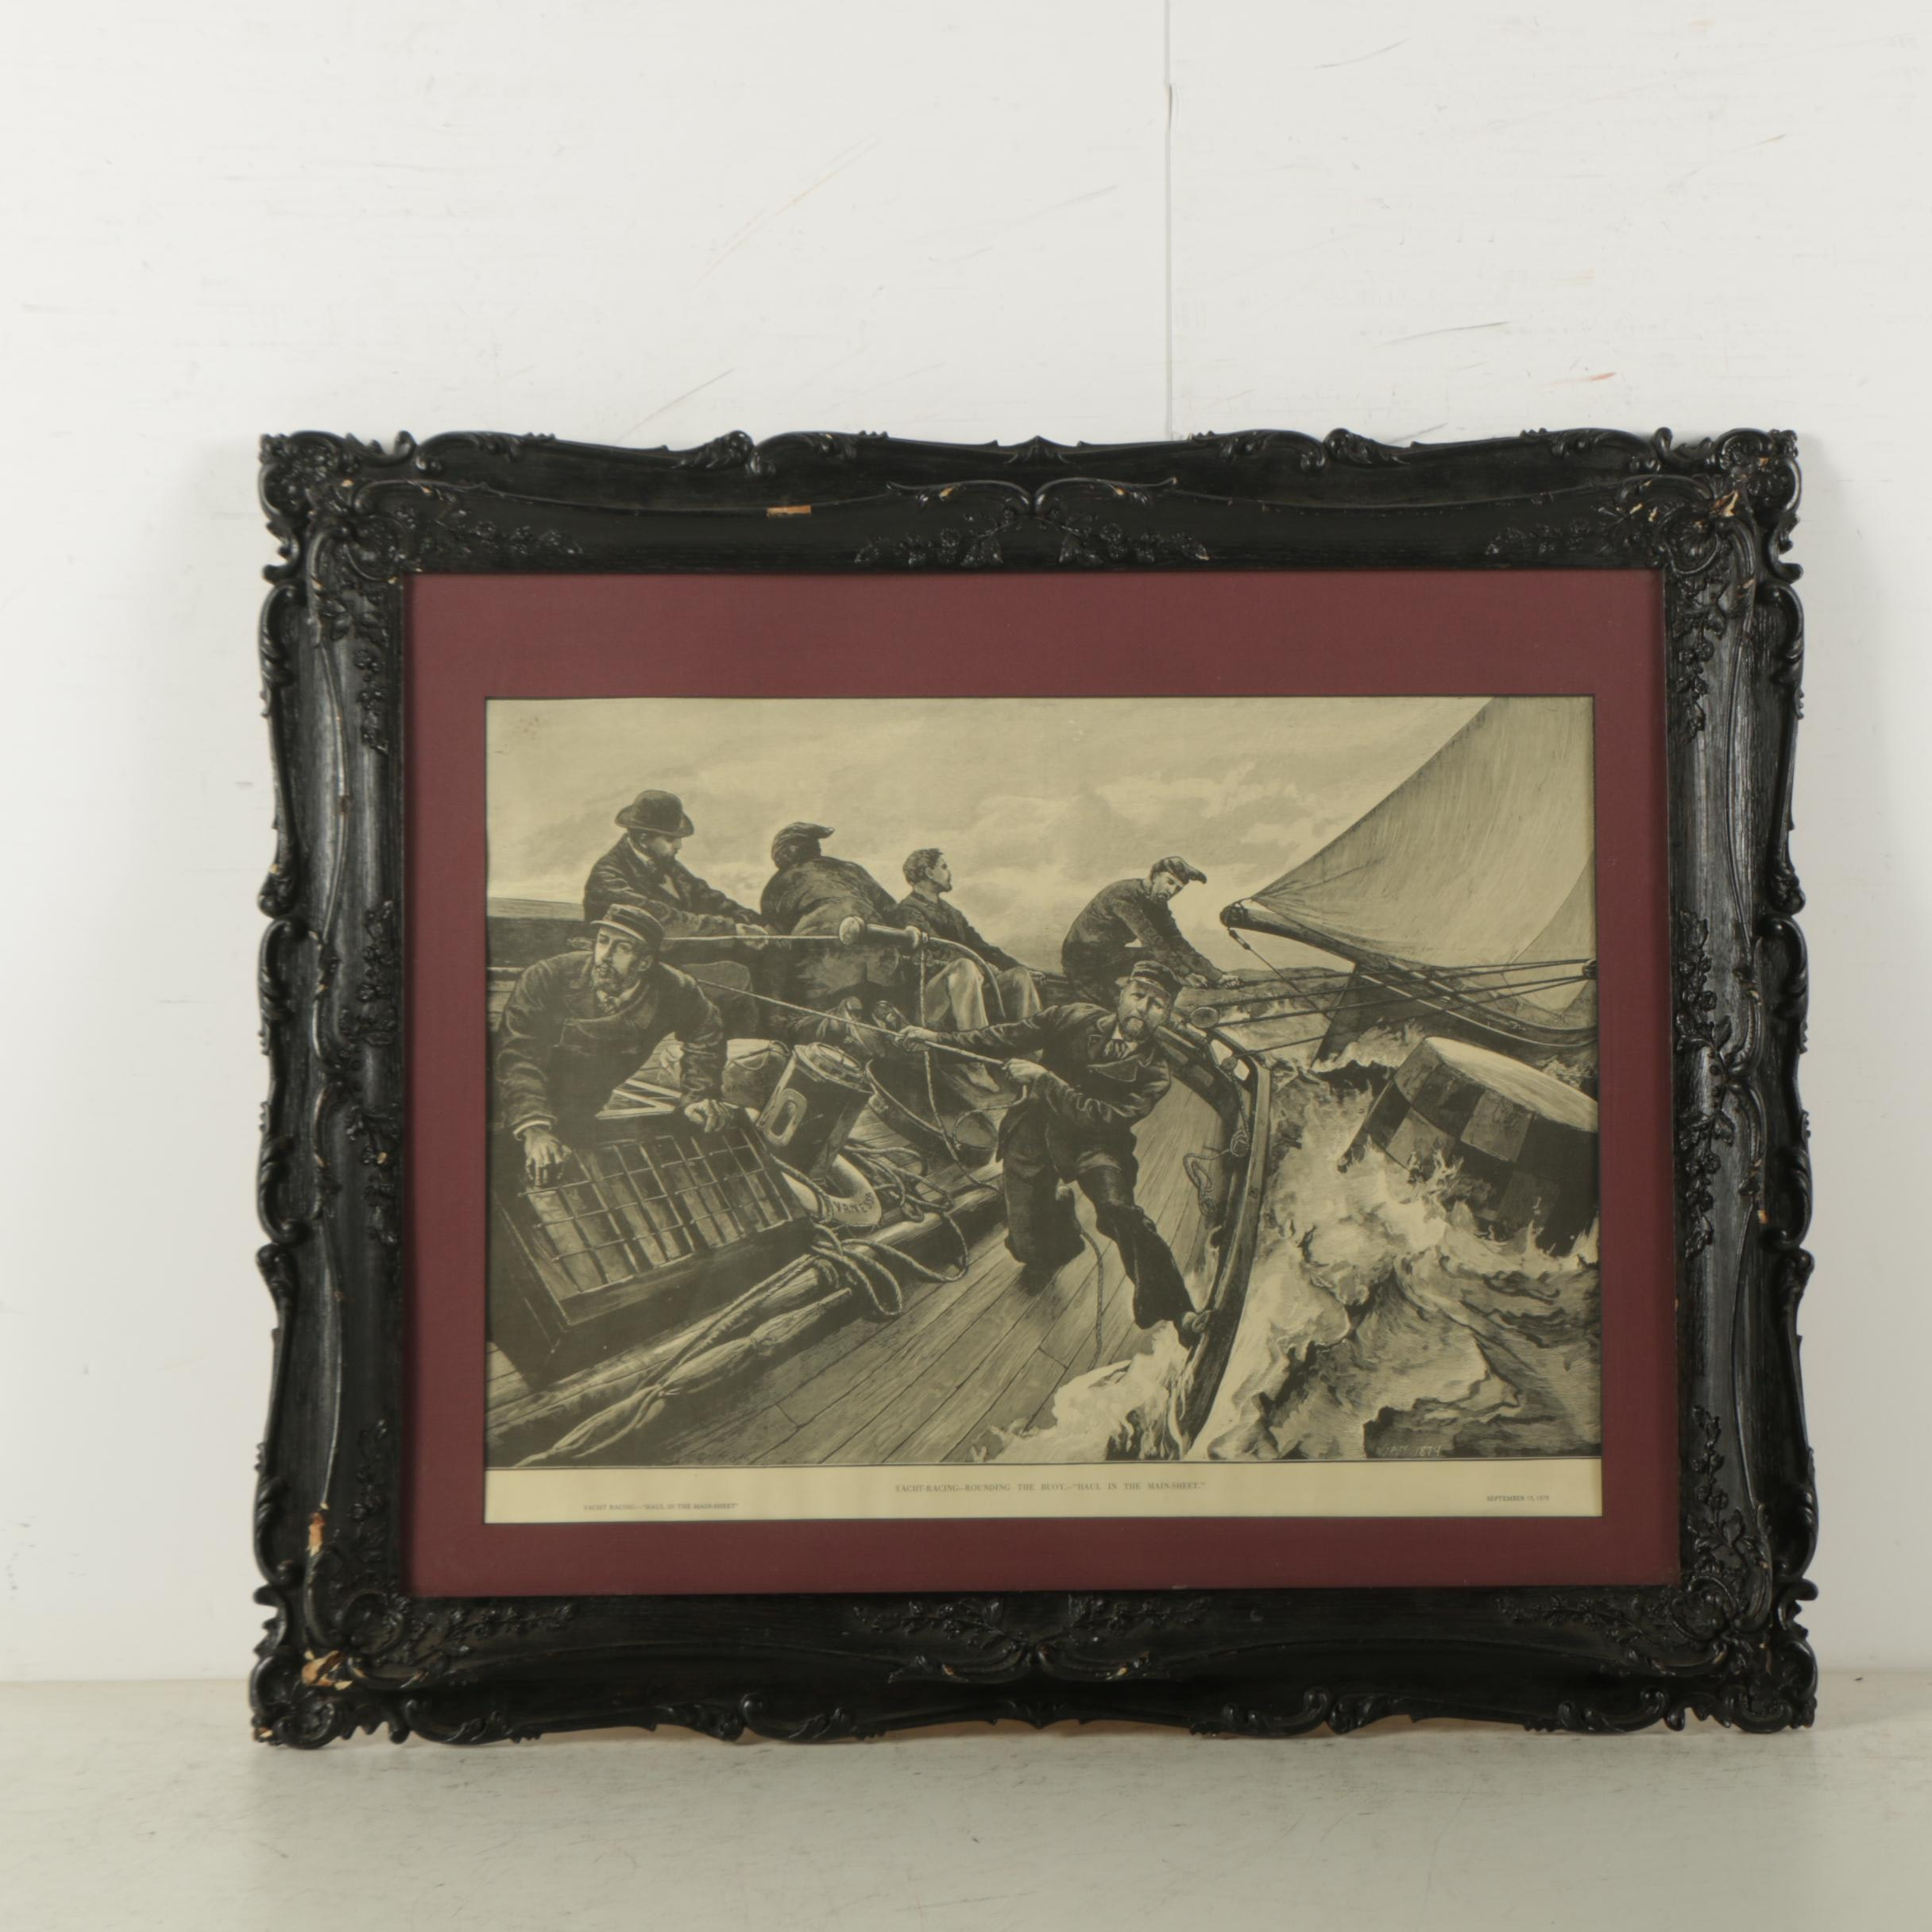 """Woodblock Print on Laid Paper """"Yacht Racing - """"Haul in the Main-Sheet"""""""""""